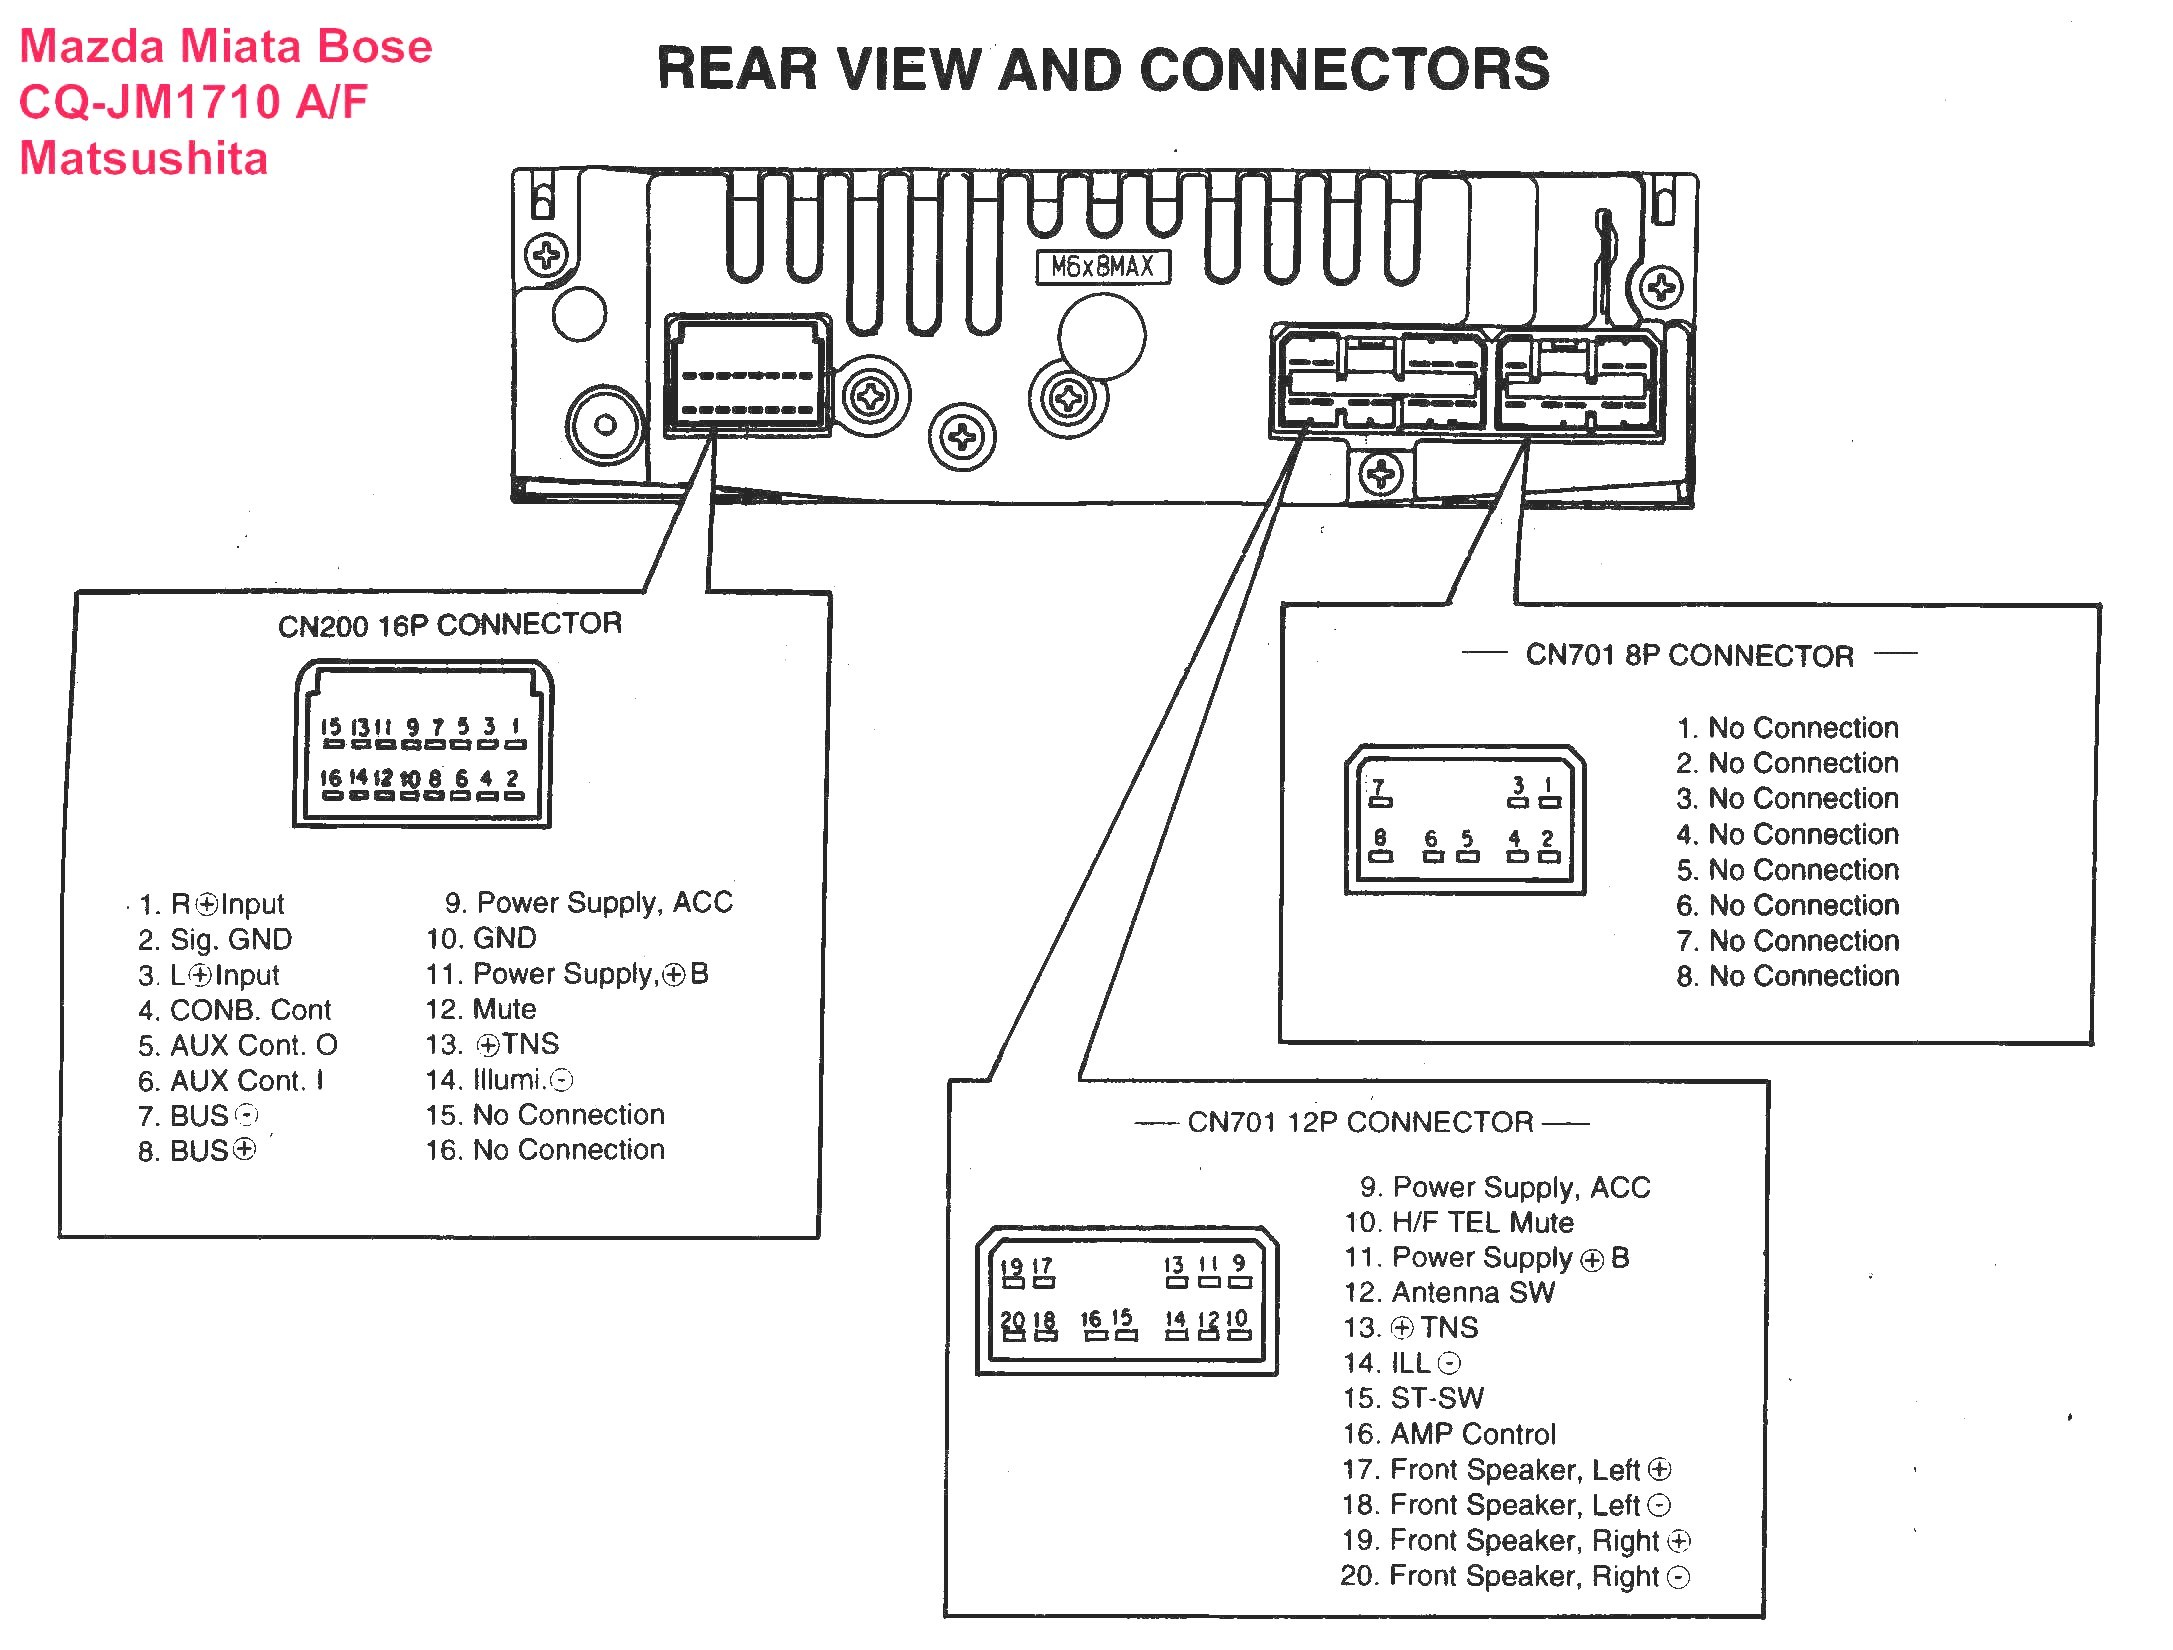 Kenwood Car Stereo Kdc 215s Wiring Diagram | Wiring ... on sub wiring diagram, dnx5120 wiring diagram, kenwood double din remote control, kenwood double din honda, cd player wiring diagram, speakers wiring diagram, alpine wiring diagram, tomtom wiring diagram, car wiring diagram, pioneer wiring diagram,